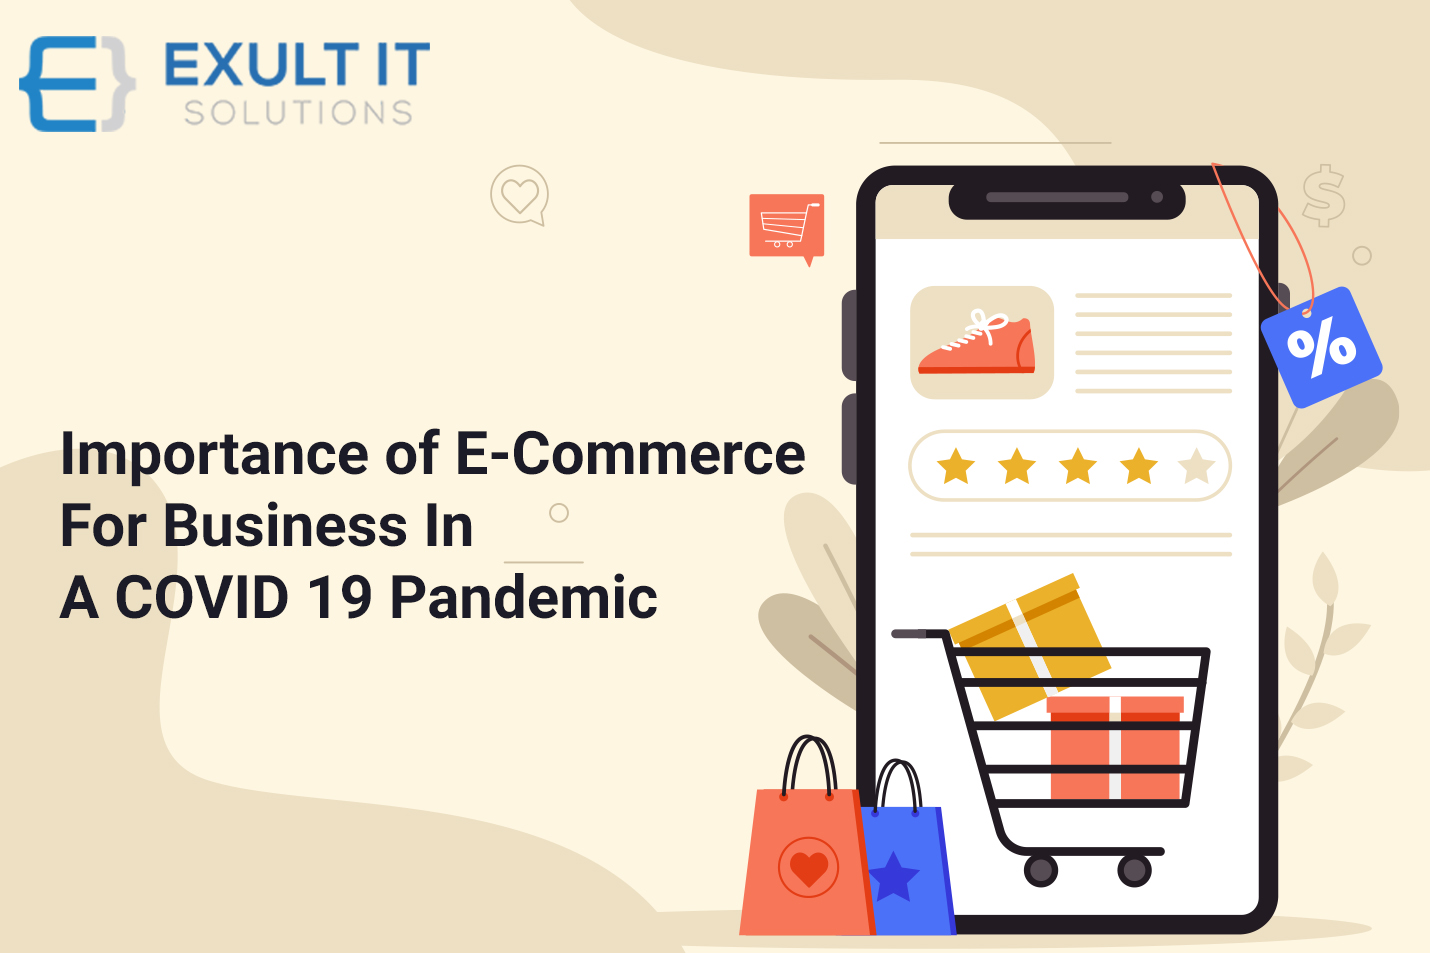 Importance of E-Commerce for Business in a COVID 19 Pandemic-Exult IT Solutions